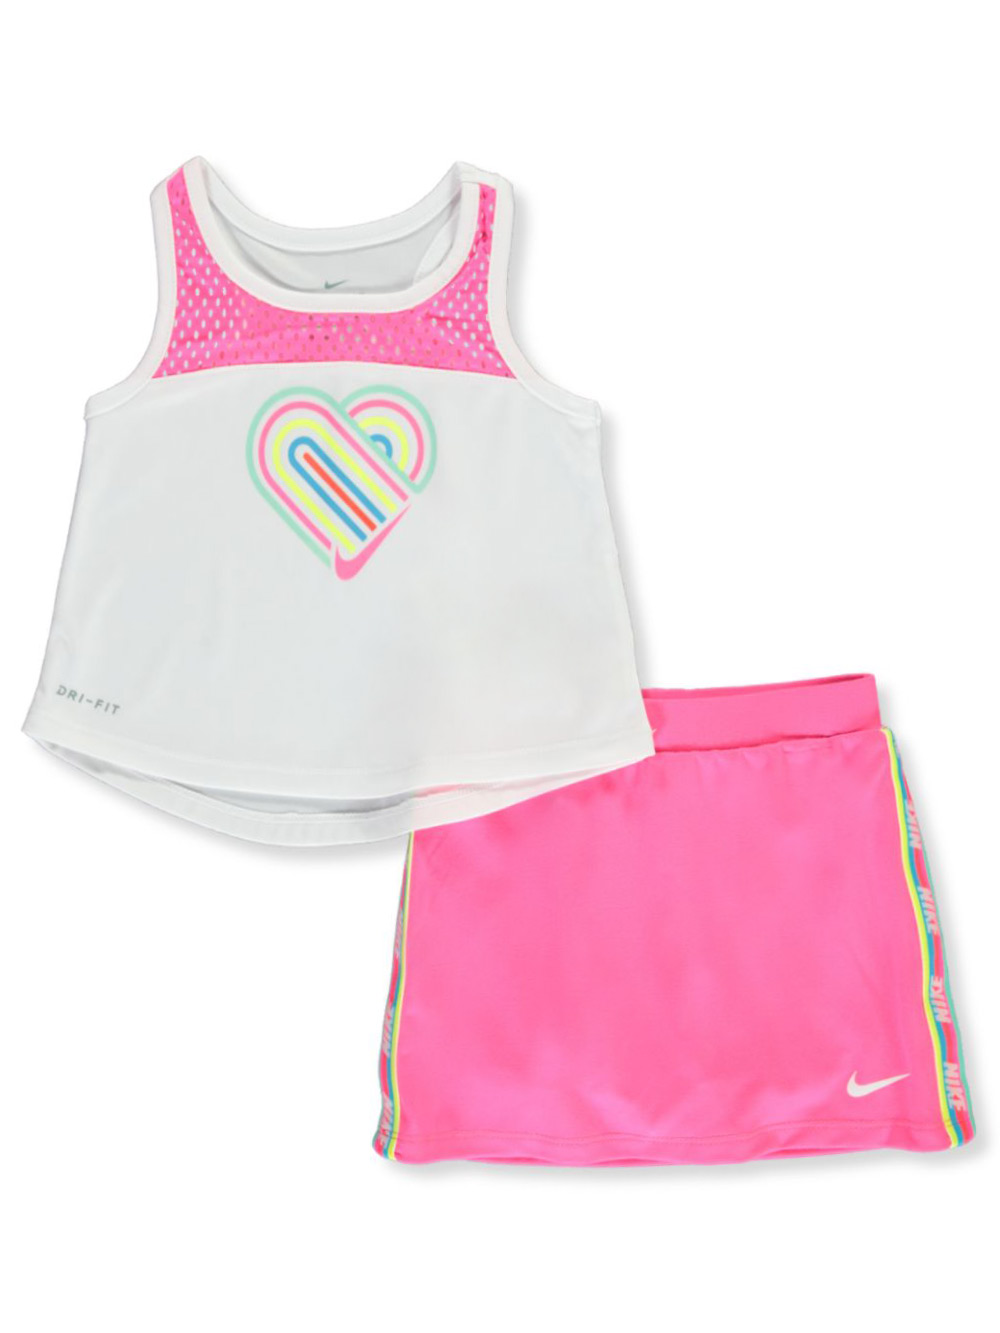 Girls' 2-Piece Skorts Set Outfit